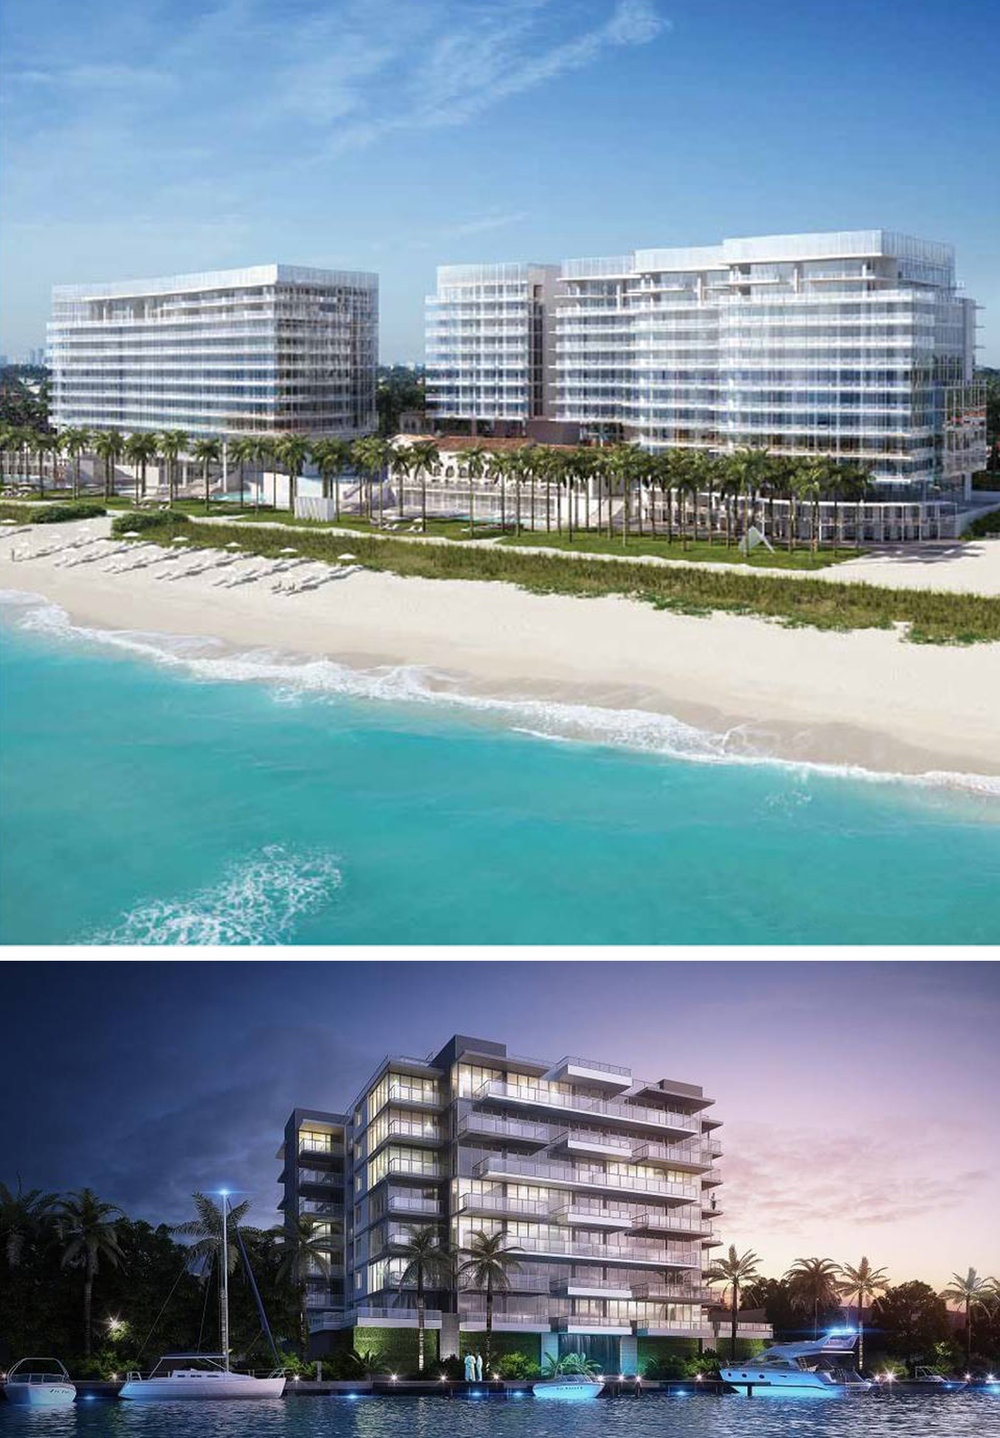 (TOP) The Surf Club Four Seasons Residences include 150 luxury condo residences with one-to-six bedroom units, plus 13 penthouses, ranging in price from $3.8 million to $40 million; design by Richard Meier (Rendering: Courtesy of Fort Capital)    (BOTTOM)  Bijou Bay Harbor is a nine-story, 41-unit, full-service boutique luxury condo, situated on the Intracoastal Waterway (adjacent to Bal Harbour).(Rendering: Courtesy of U.S. Affiliate of Acierto Inmobiliario-Juan Carlos Gonzalez)